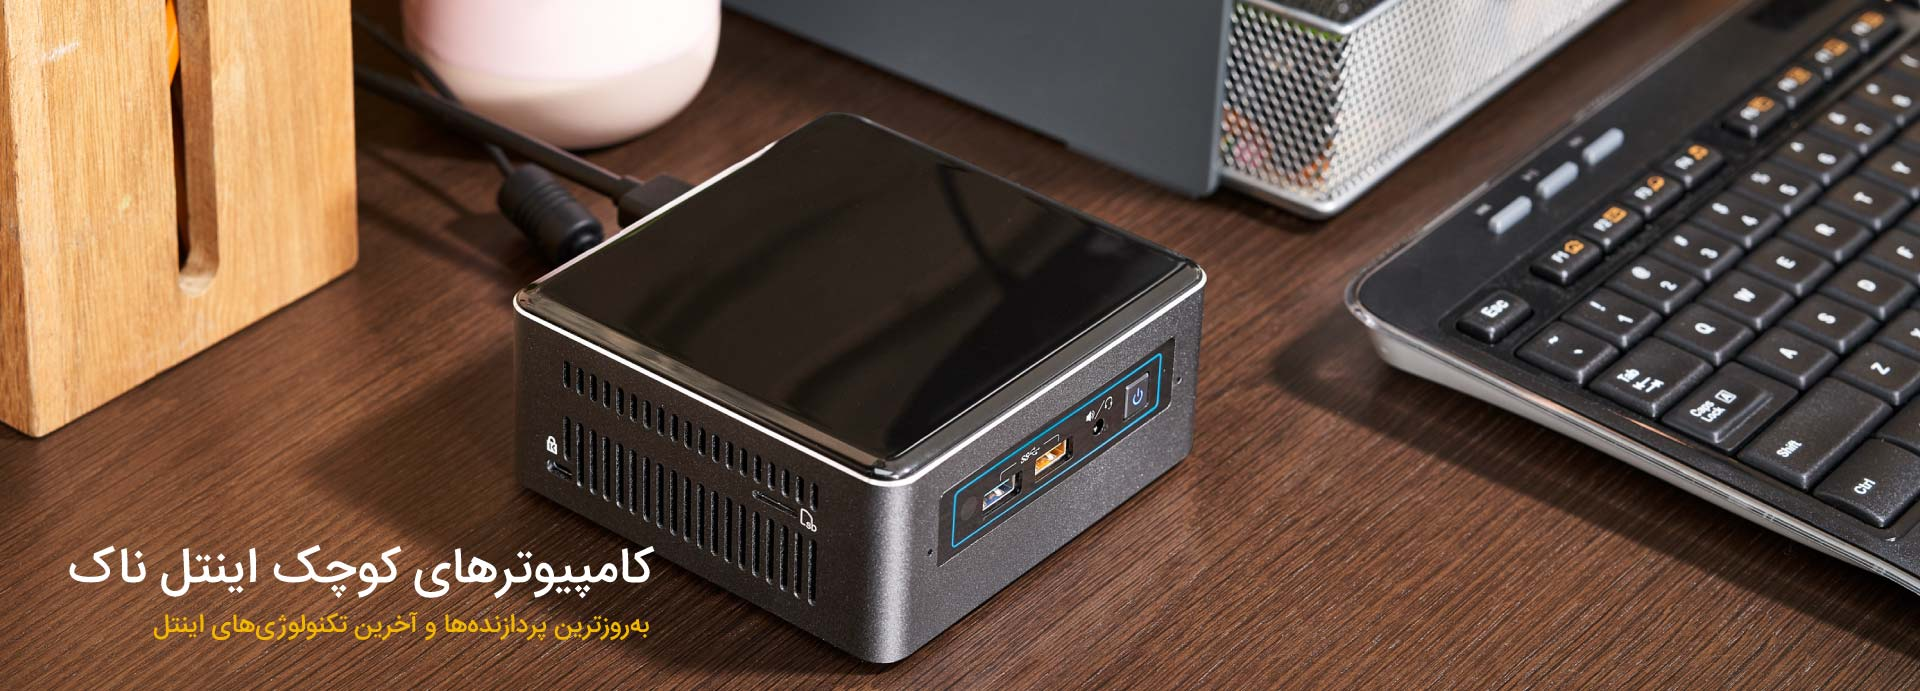 Intel NUC Lifestyle